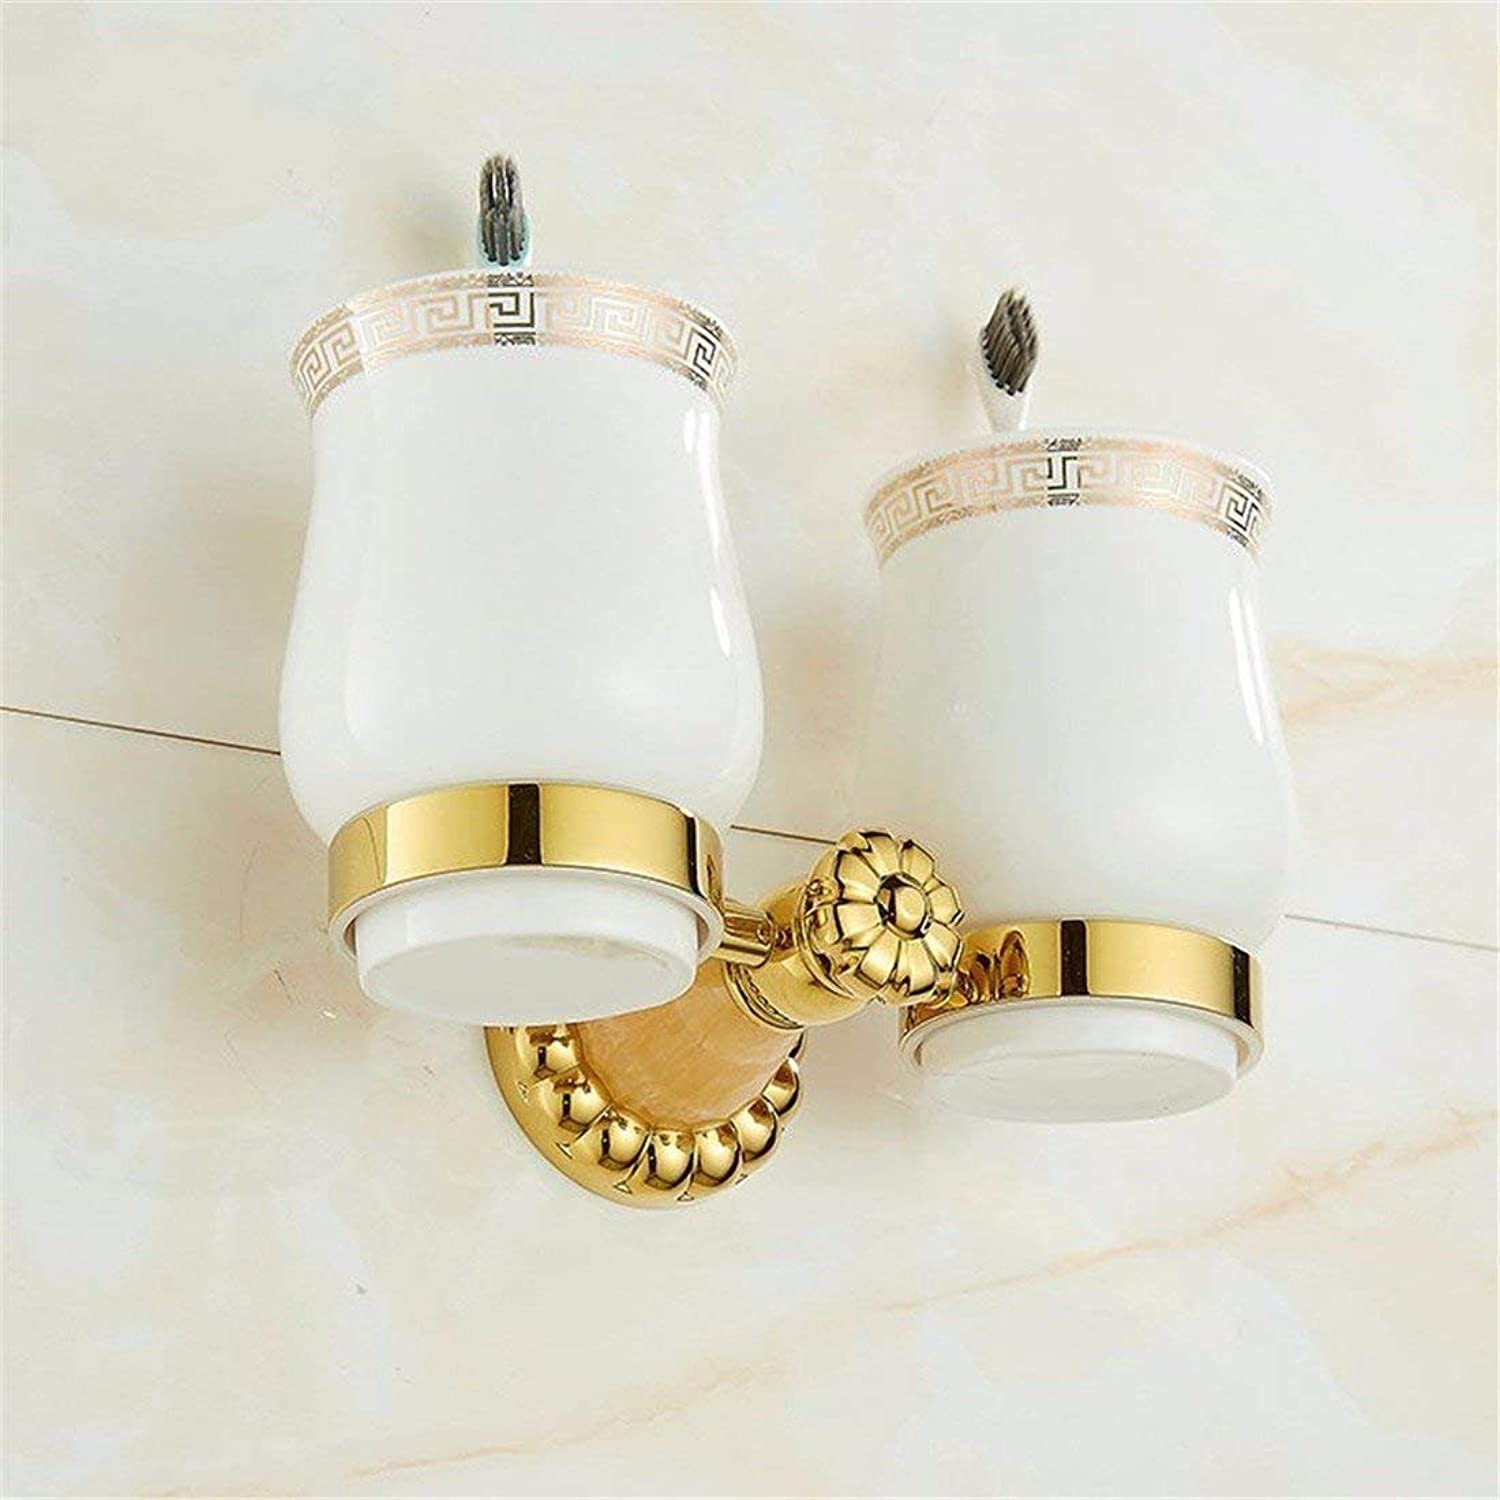 Copper gold European Type Full Natural Jade Hanger Dry-Towels,Bathroom Toilet of Double Agreement Cup